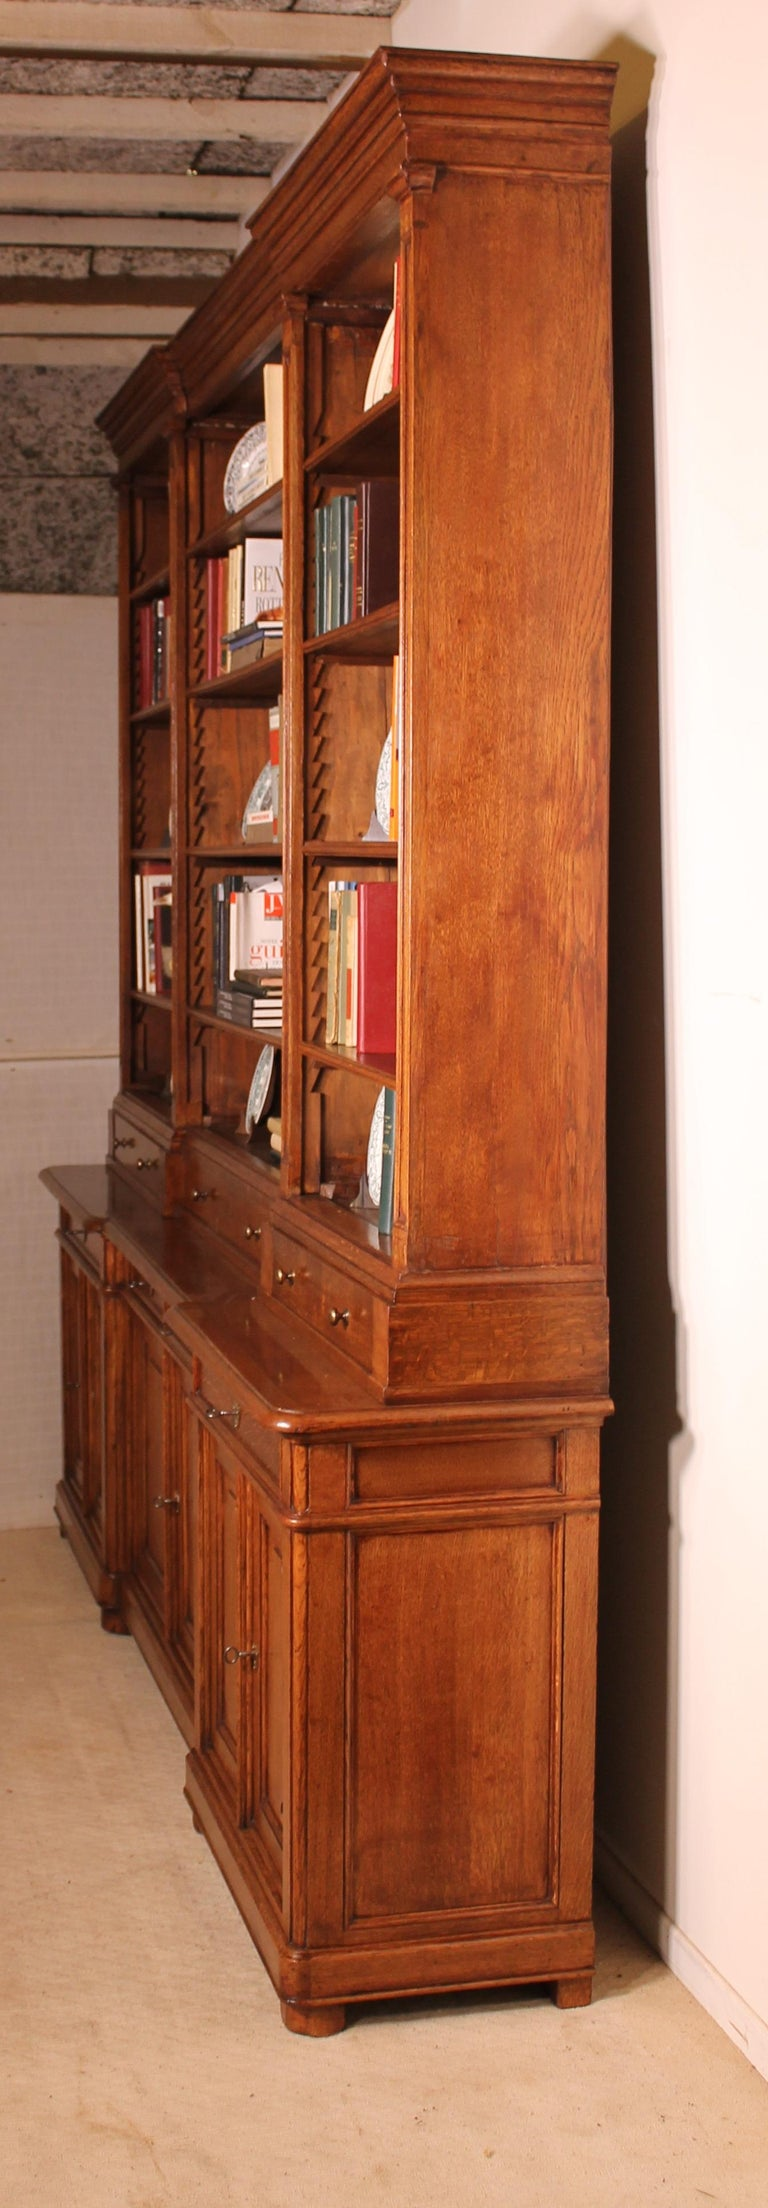 Louis Philippe Open Bookcase: French 19th Century Bookcase In Light Oak For Sale At 1stdibs